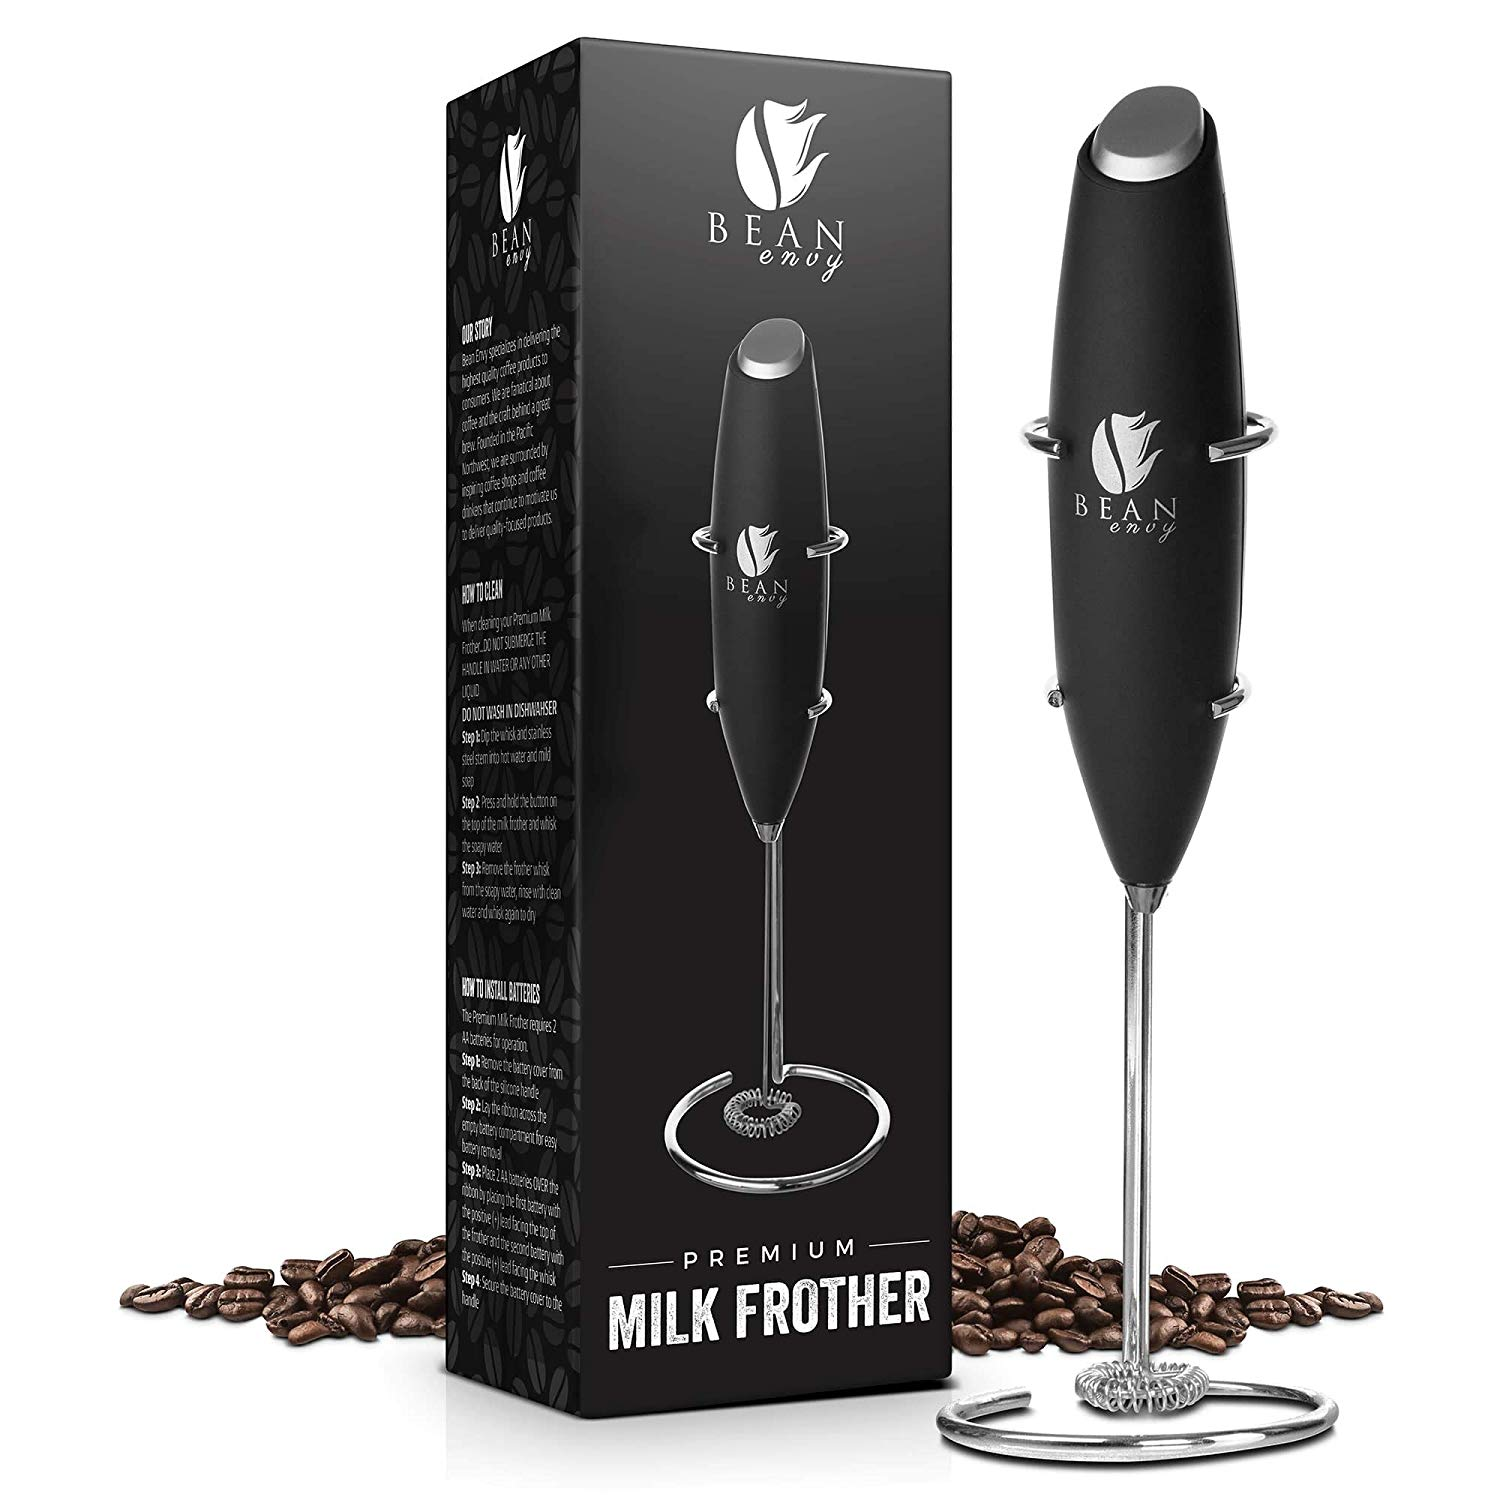 Bean Envy Milk Frother